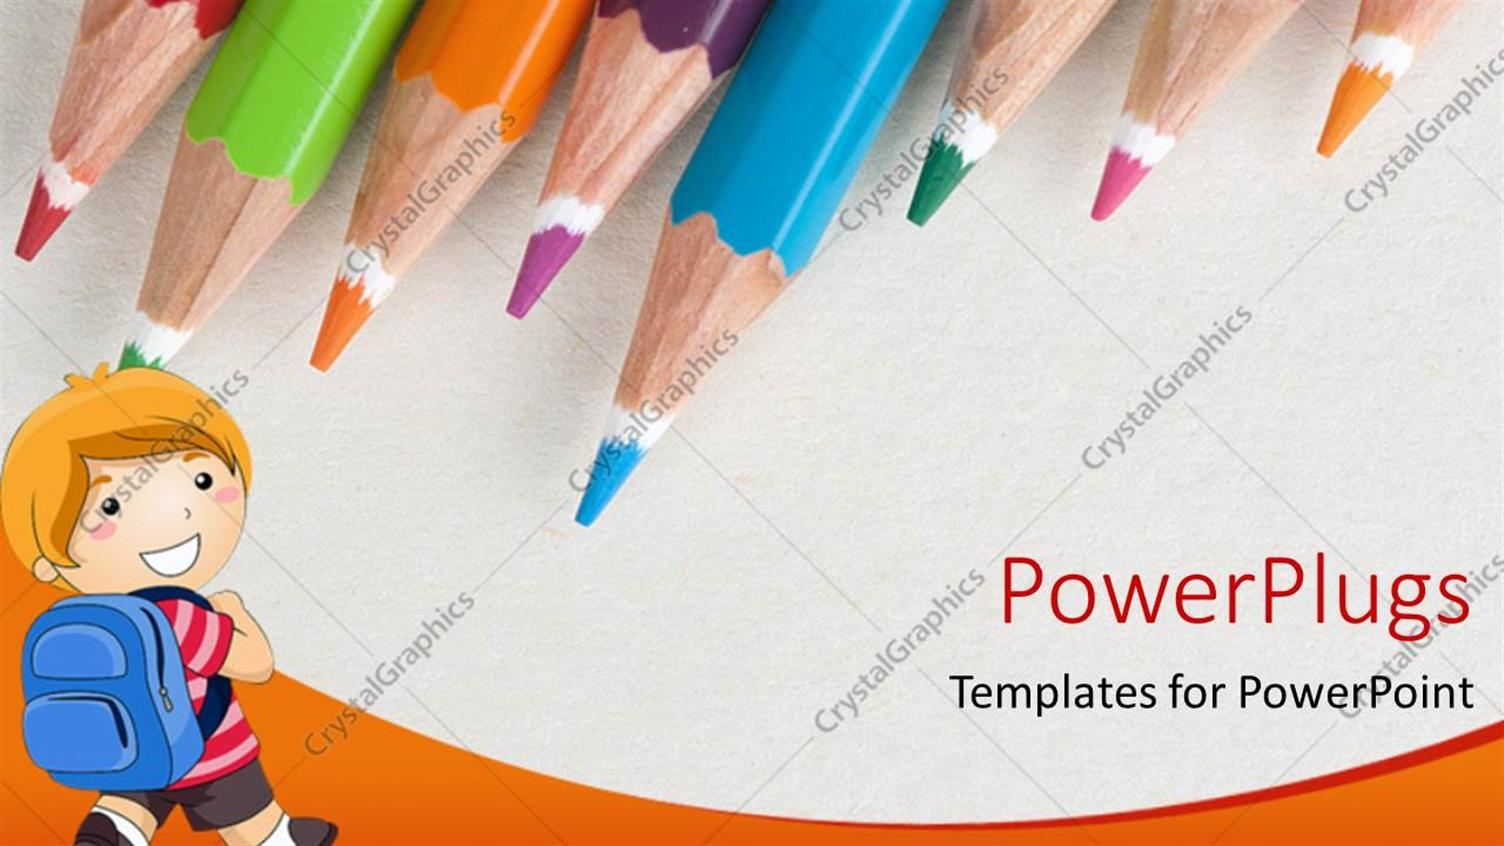 PowerPoint Template Displaying Lots of Color Pencils with a Boy Carrying a School Bag